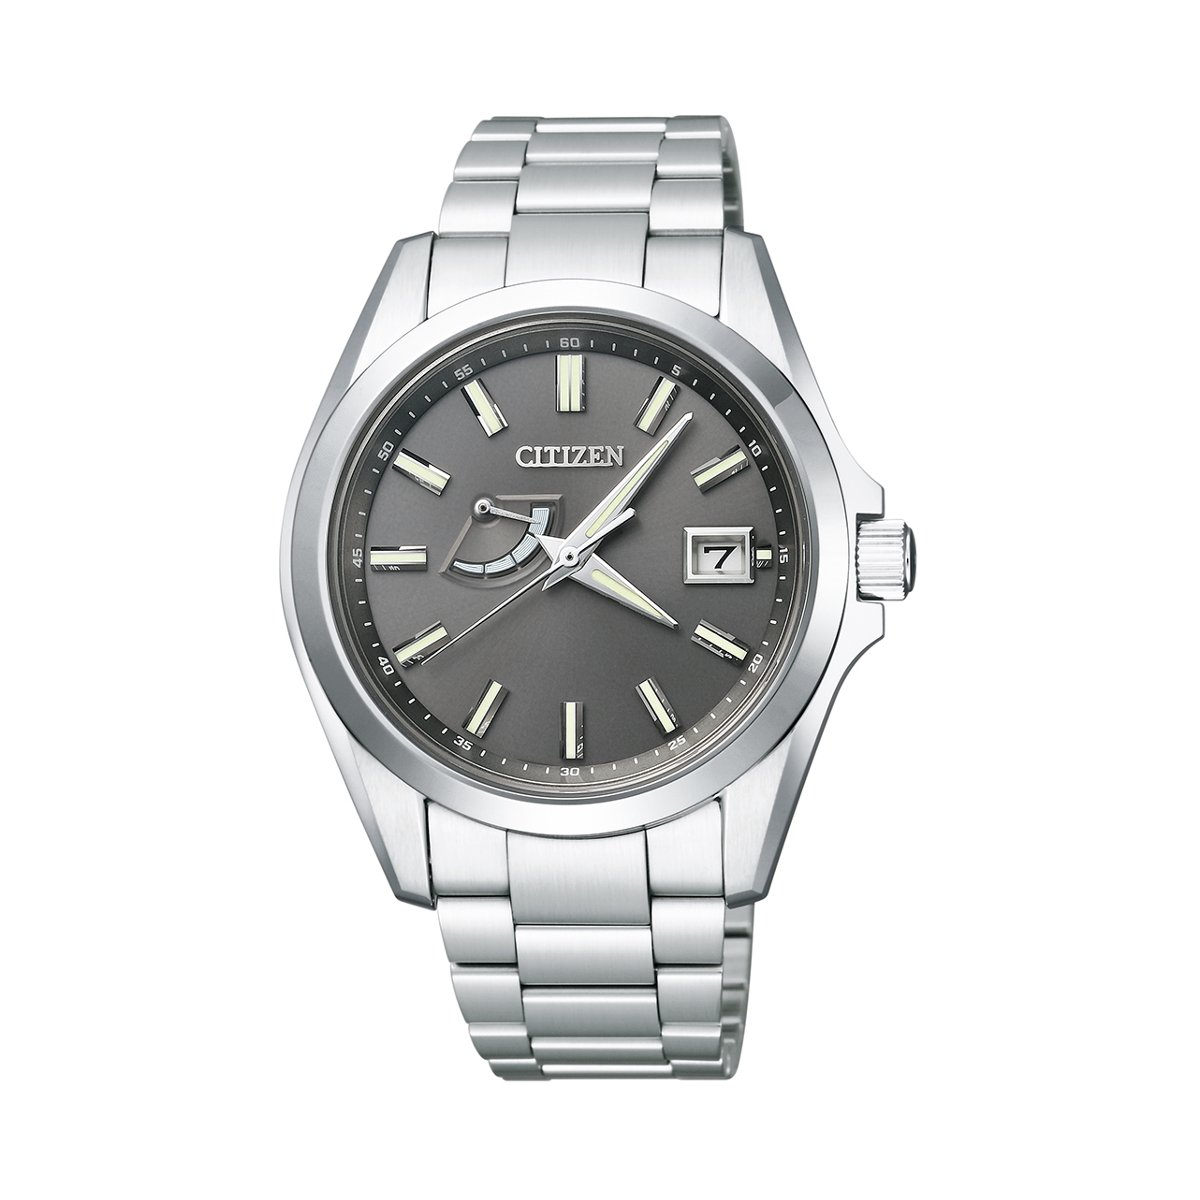 Montre THE CITIZEN Acier Eco Drive AQ1030-57H